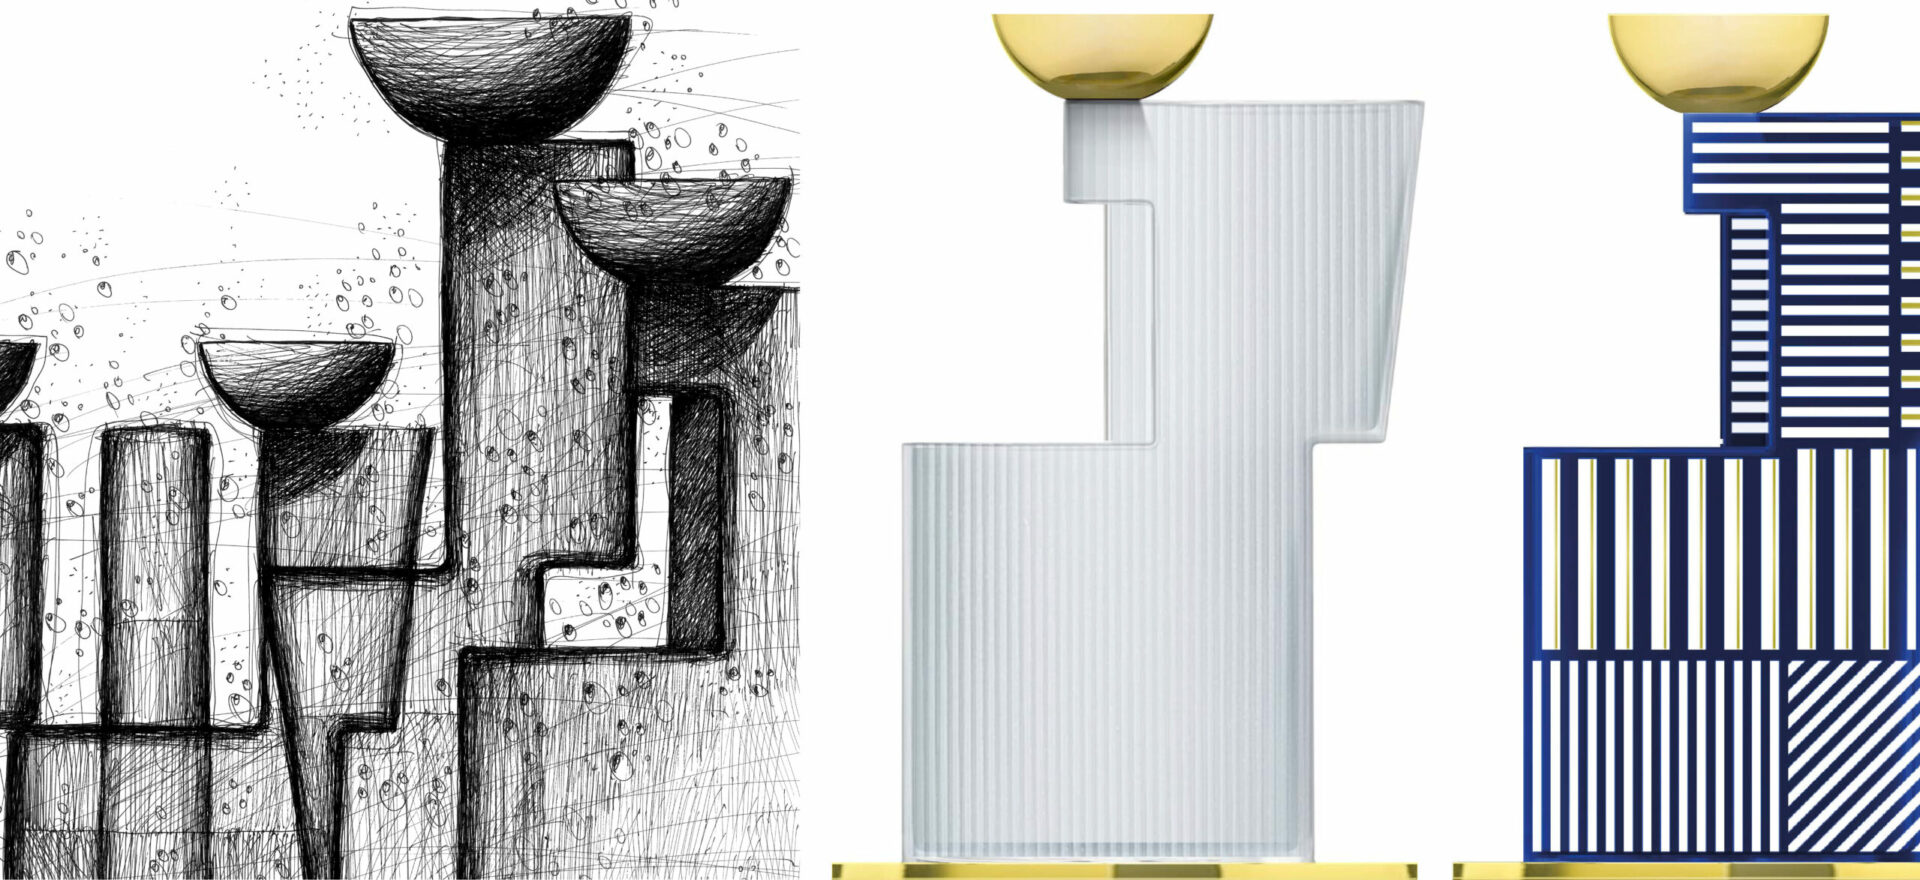 Water Tanks_Paşabahçe_Vases Collection_Drawing_Mario Trimarchi Design_Products Artwork